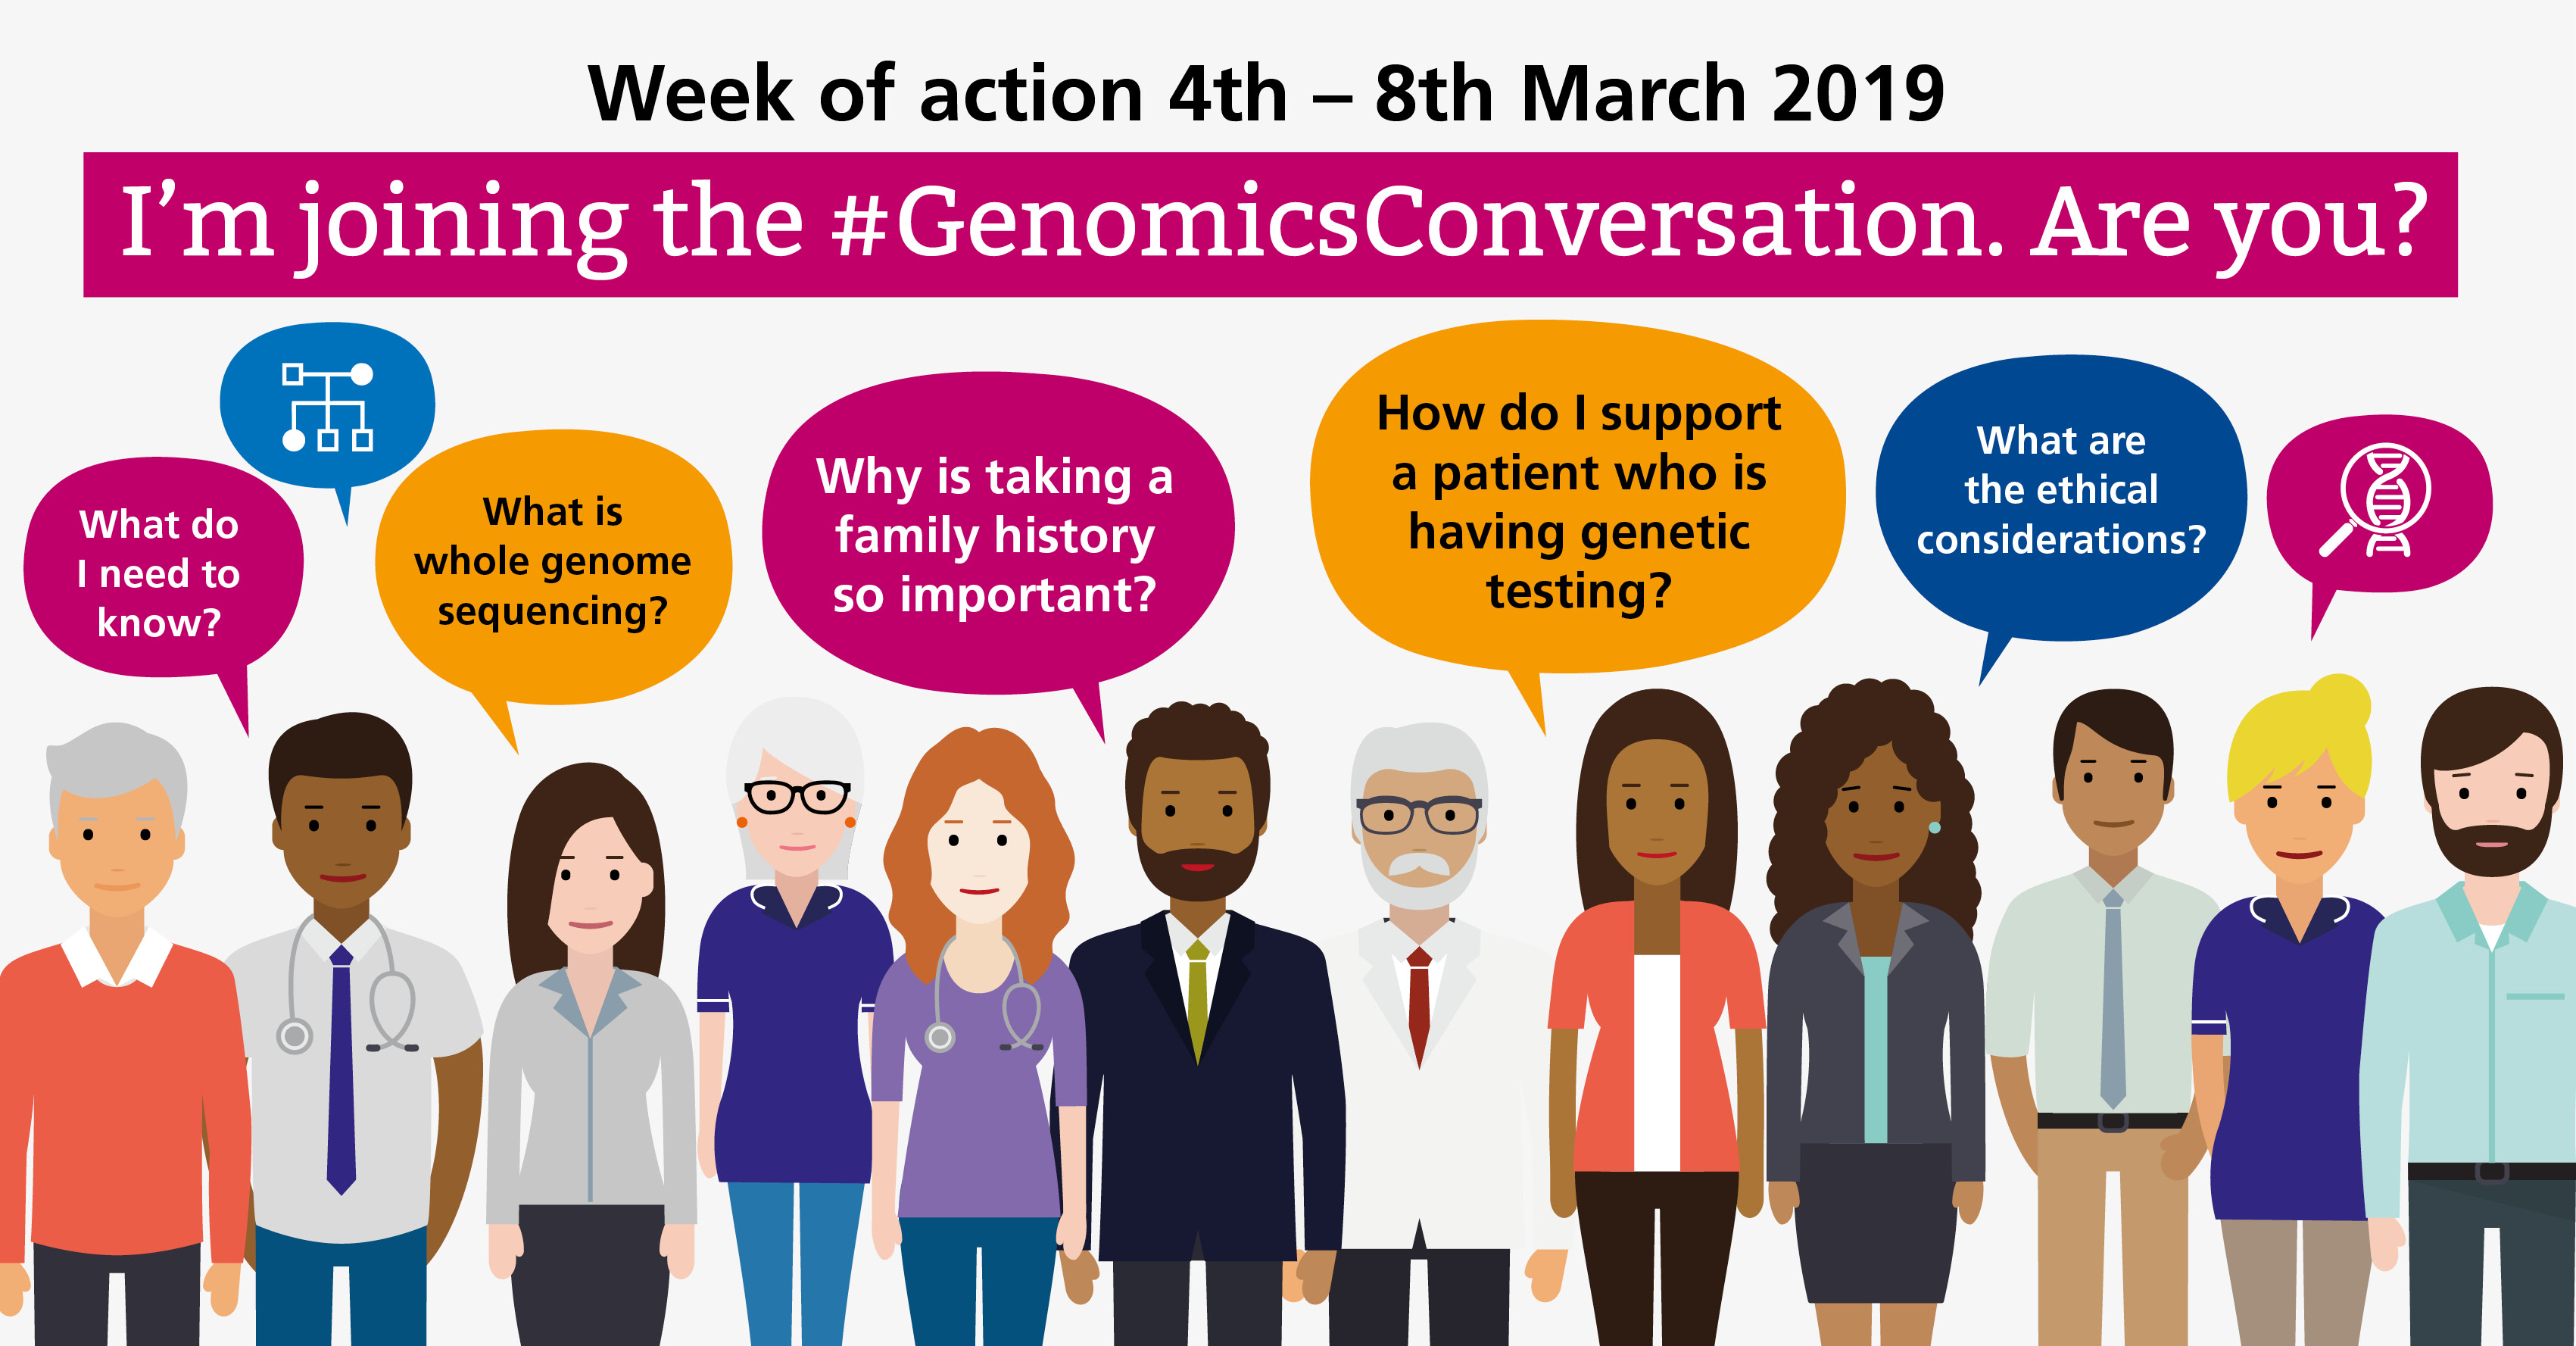 Week of Action #GenomicsConversation